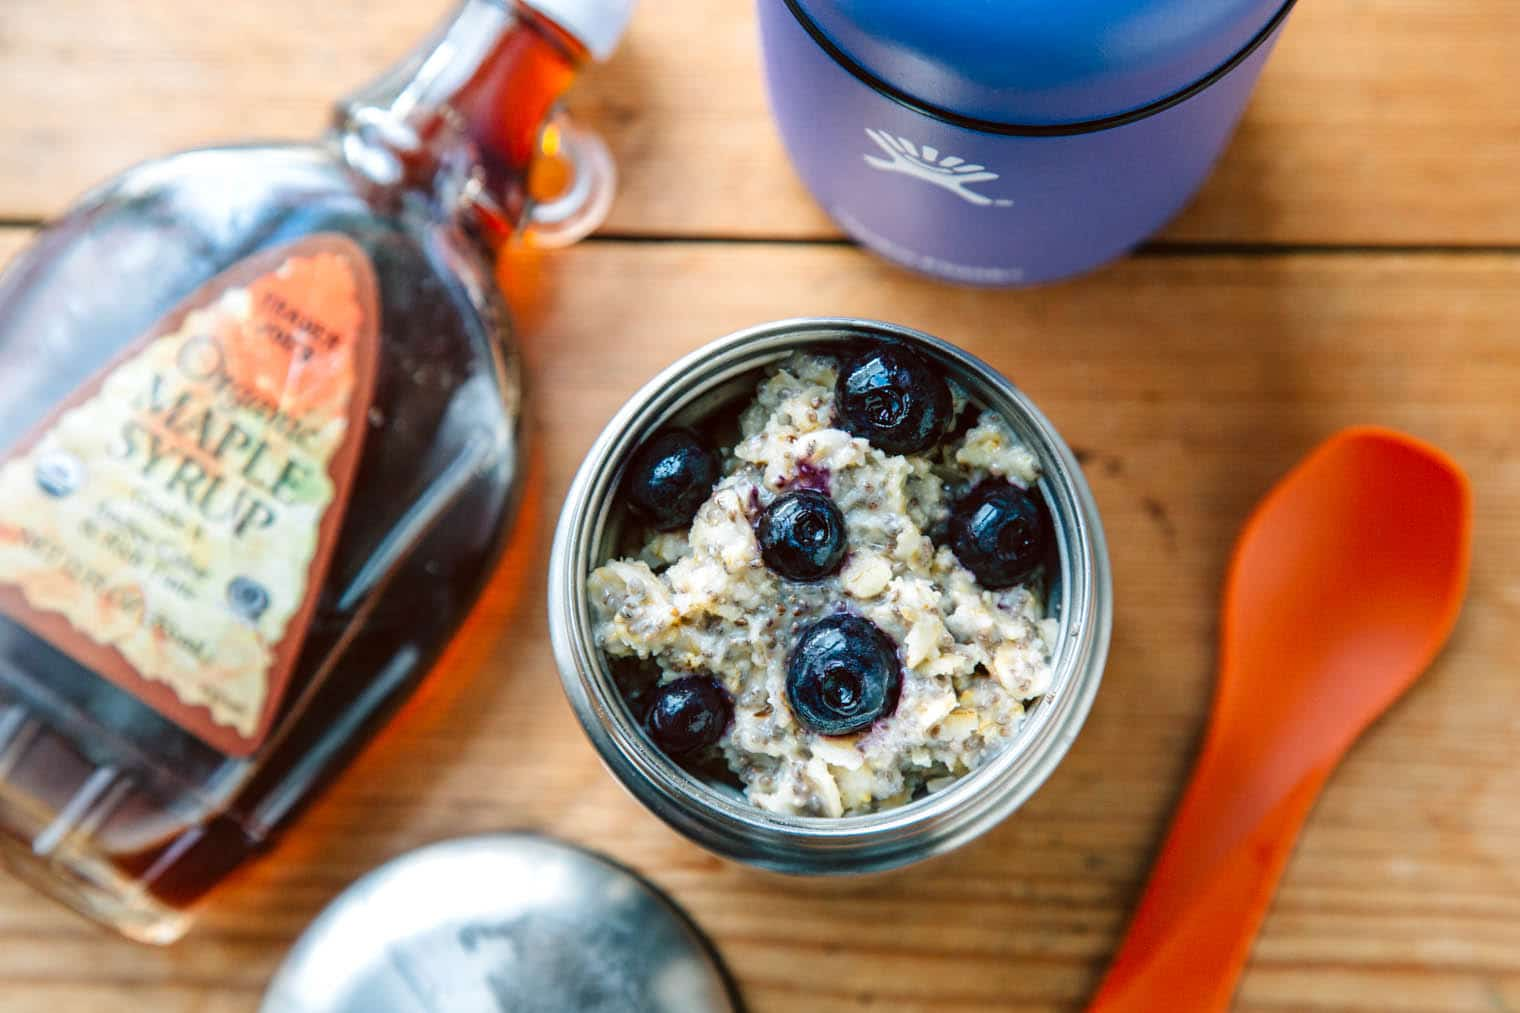 A quick and easy coconut and chia seed oatmeal, a perfect breakfast for a camping trip or an early morning hike.